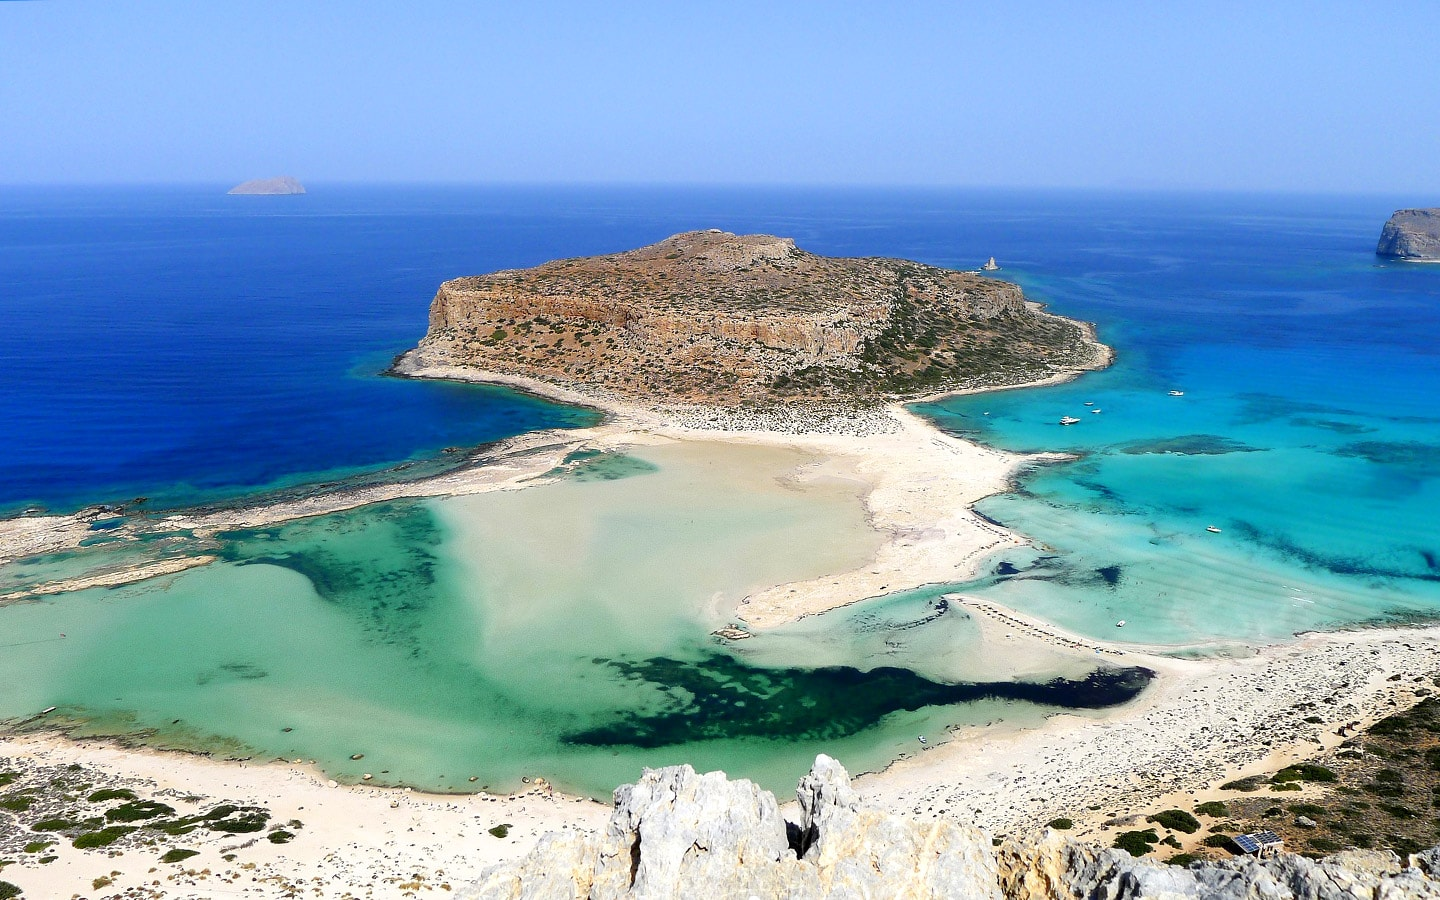 Carte Snorkeling Crete.Excursions And Beaches In Crete Iperion Beach Hotel